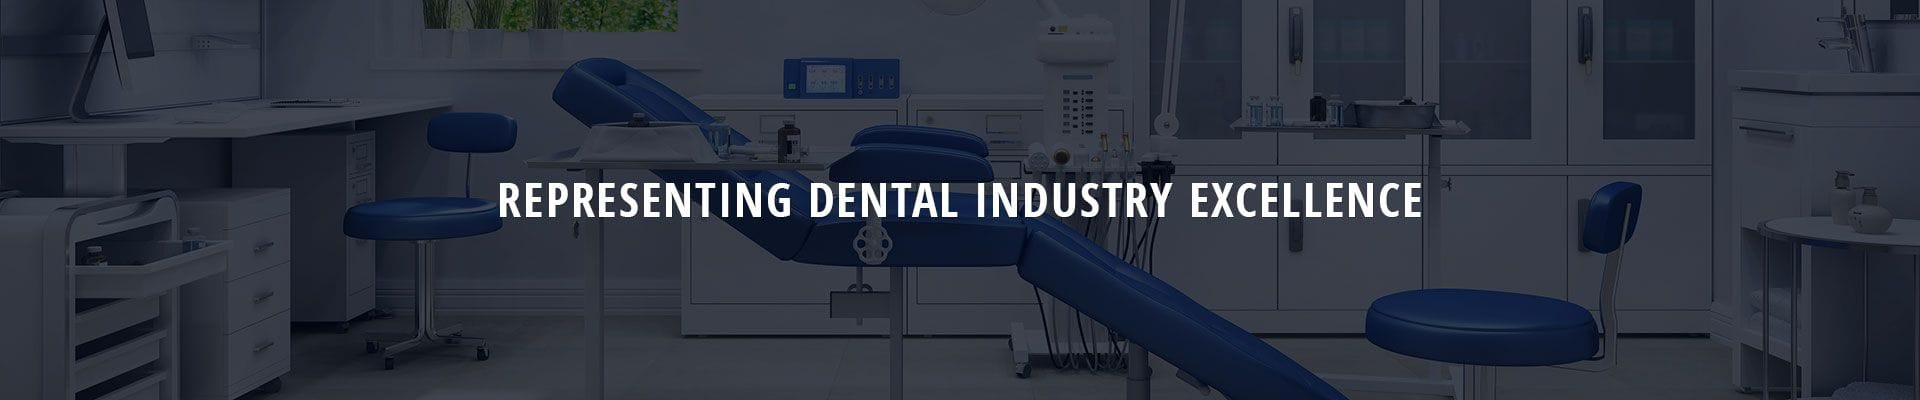 ADIA Privacy Policy | Australian Dental Industry Association